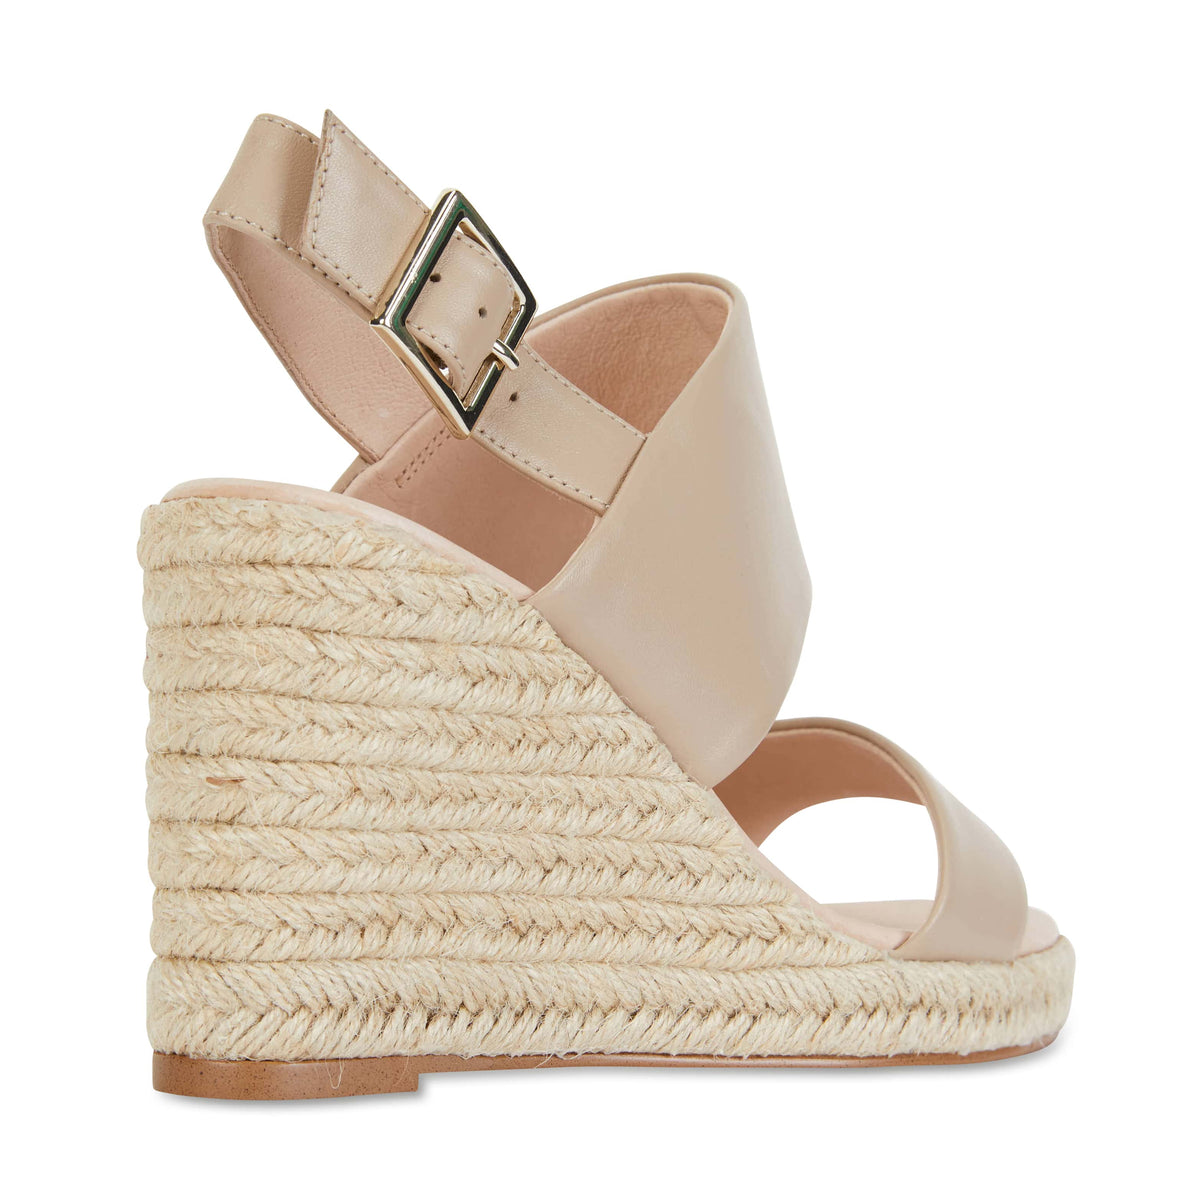 Dice Espadrille in Nude Leather